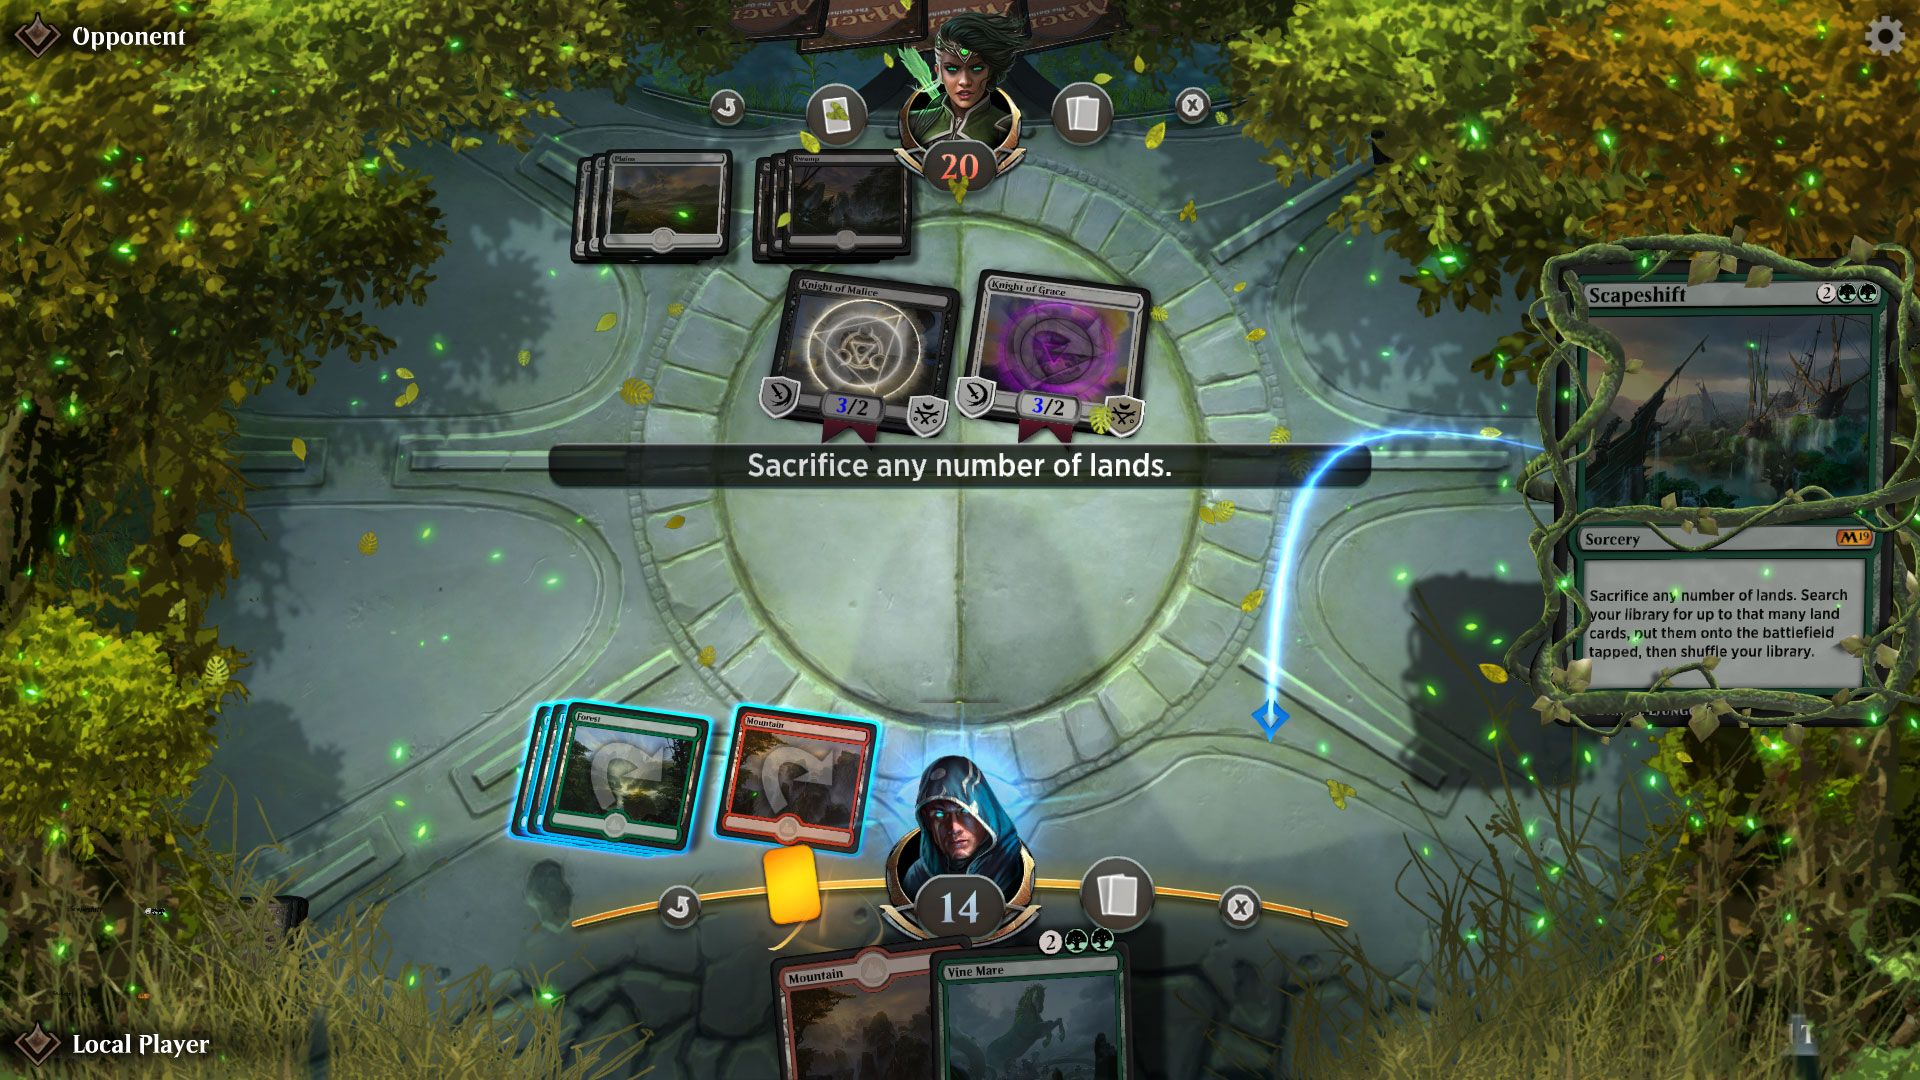 Arena Game Mtg Arena Hands On Impressions Easy Interface Makes Playing Simple